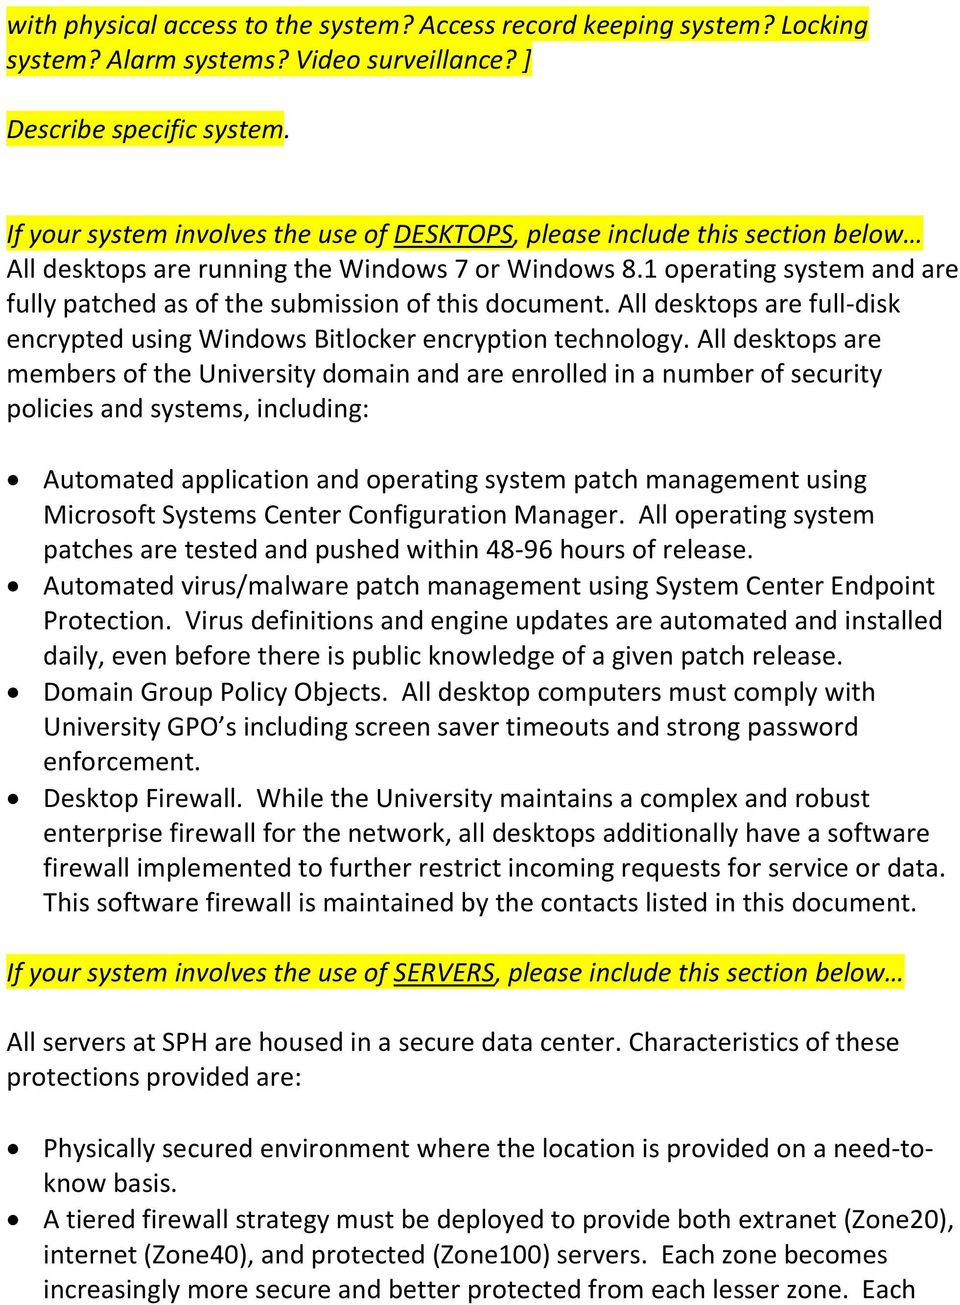 1 operating system and are fully patched as of the submission of this document. All desktops are full-disk encrypted using Windows Bitlocker encryption technology.